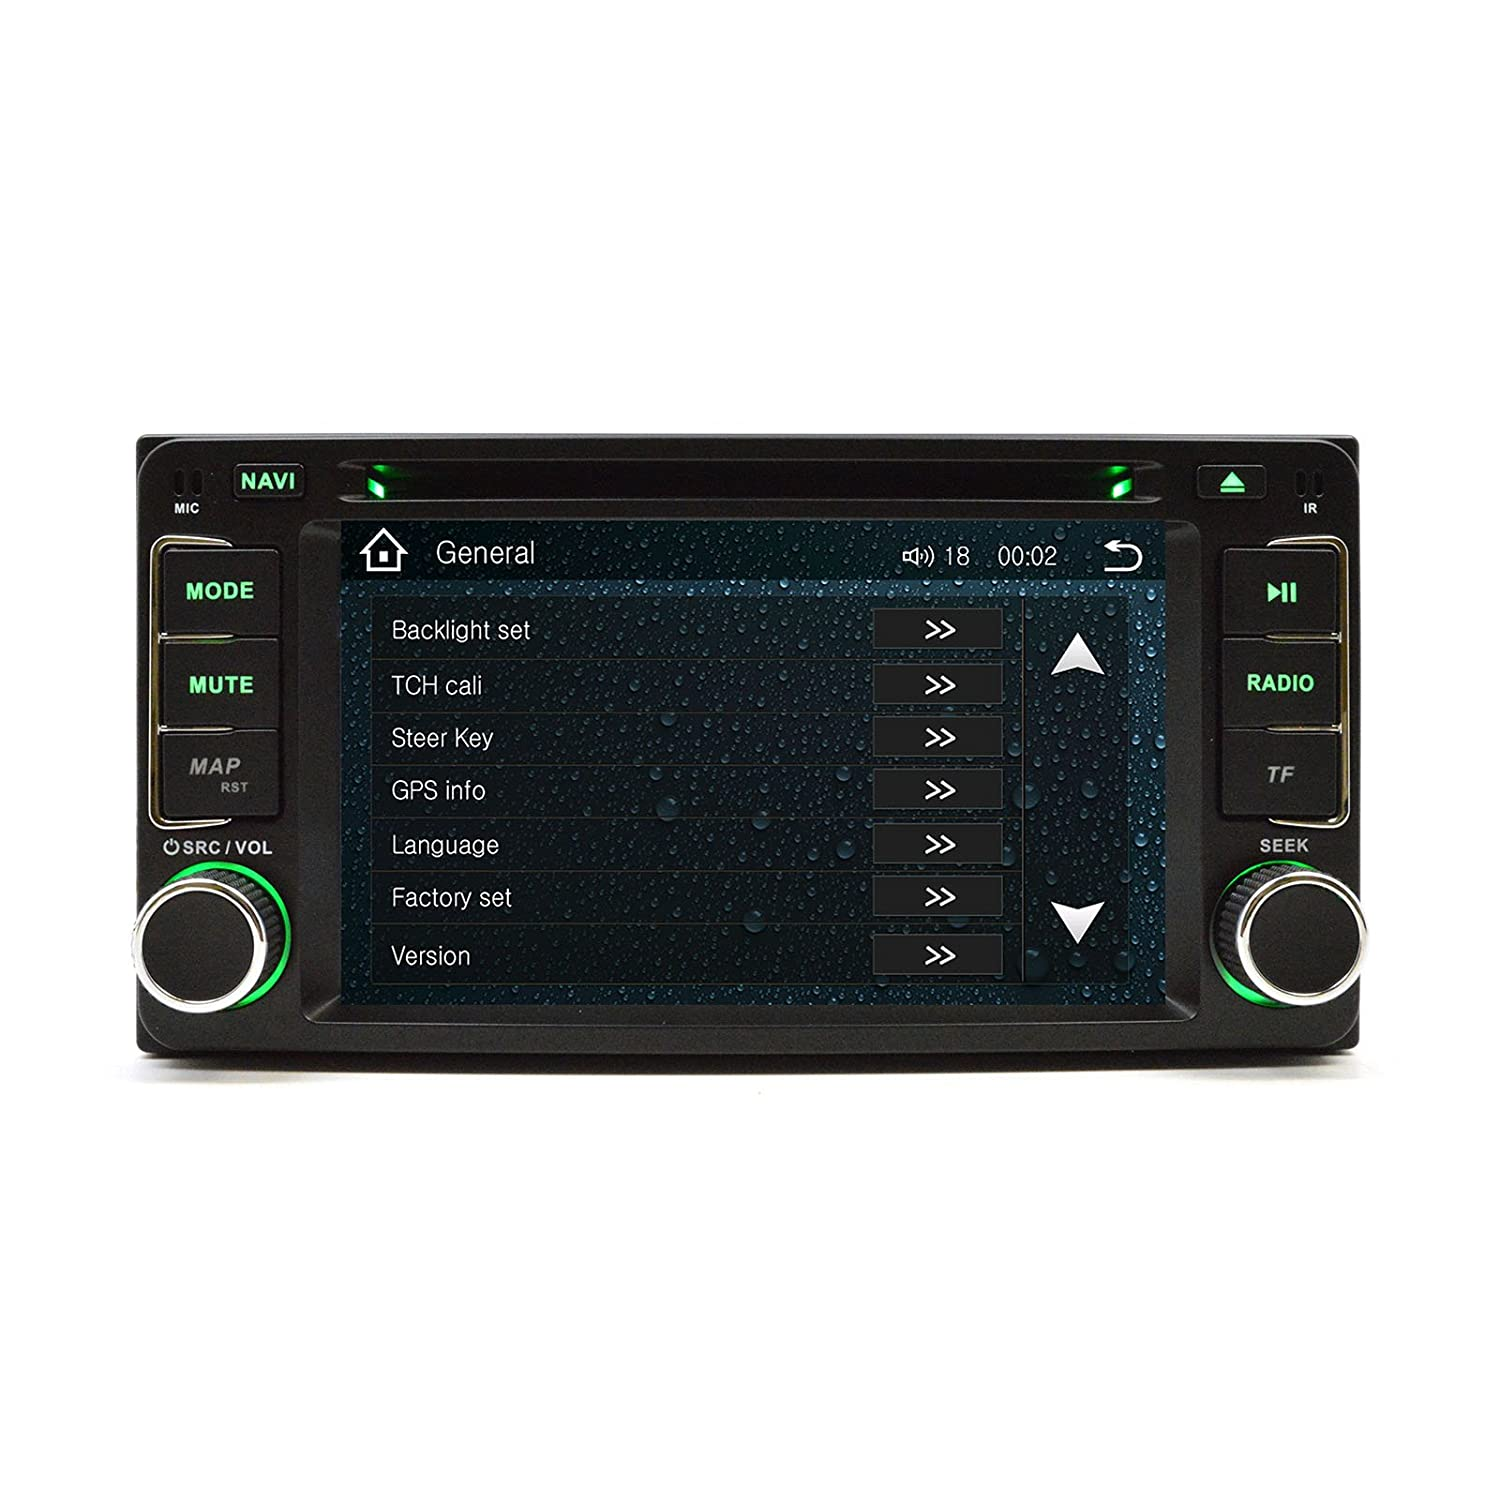 Amazon.com: TOYOTA TUNDRA 2003-2006 K-SERIES MULTIMEDIA NAVIGATION SYSTEM: Cell Phones & Accessories